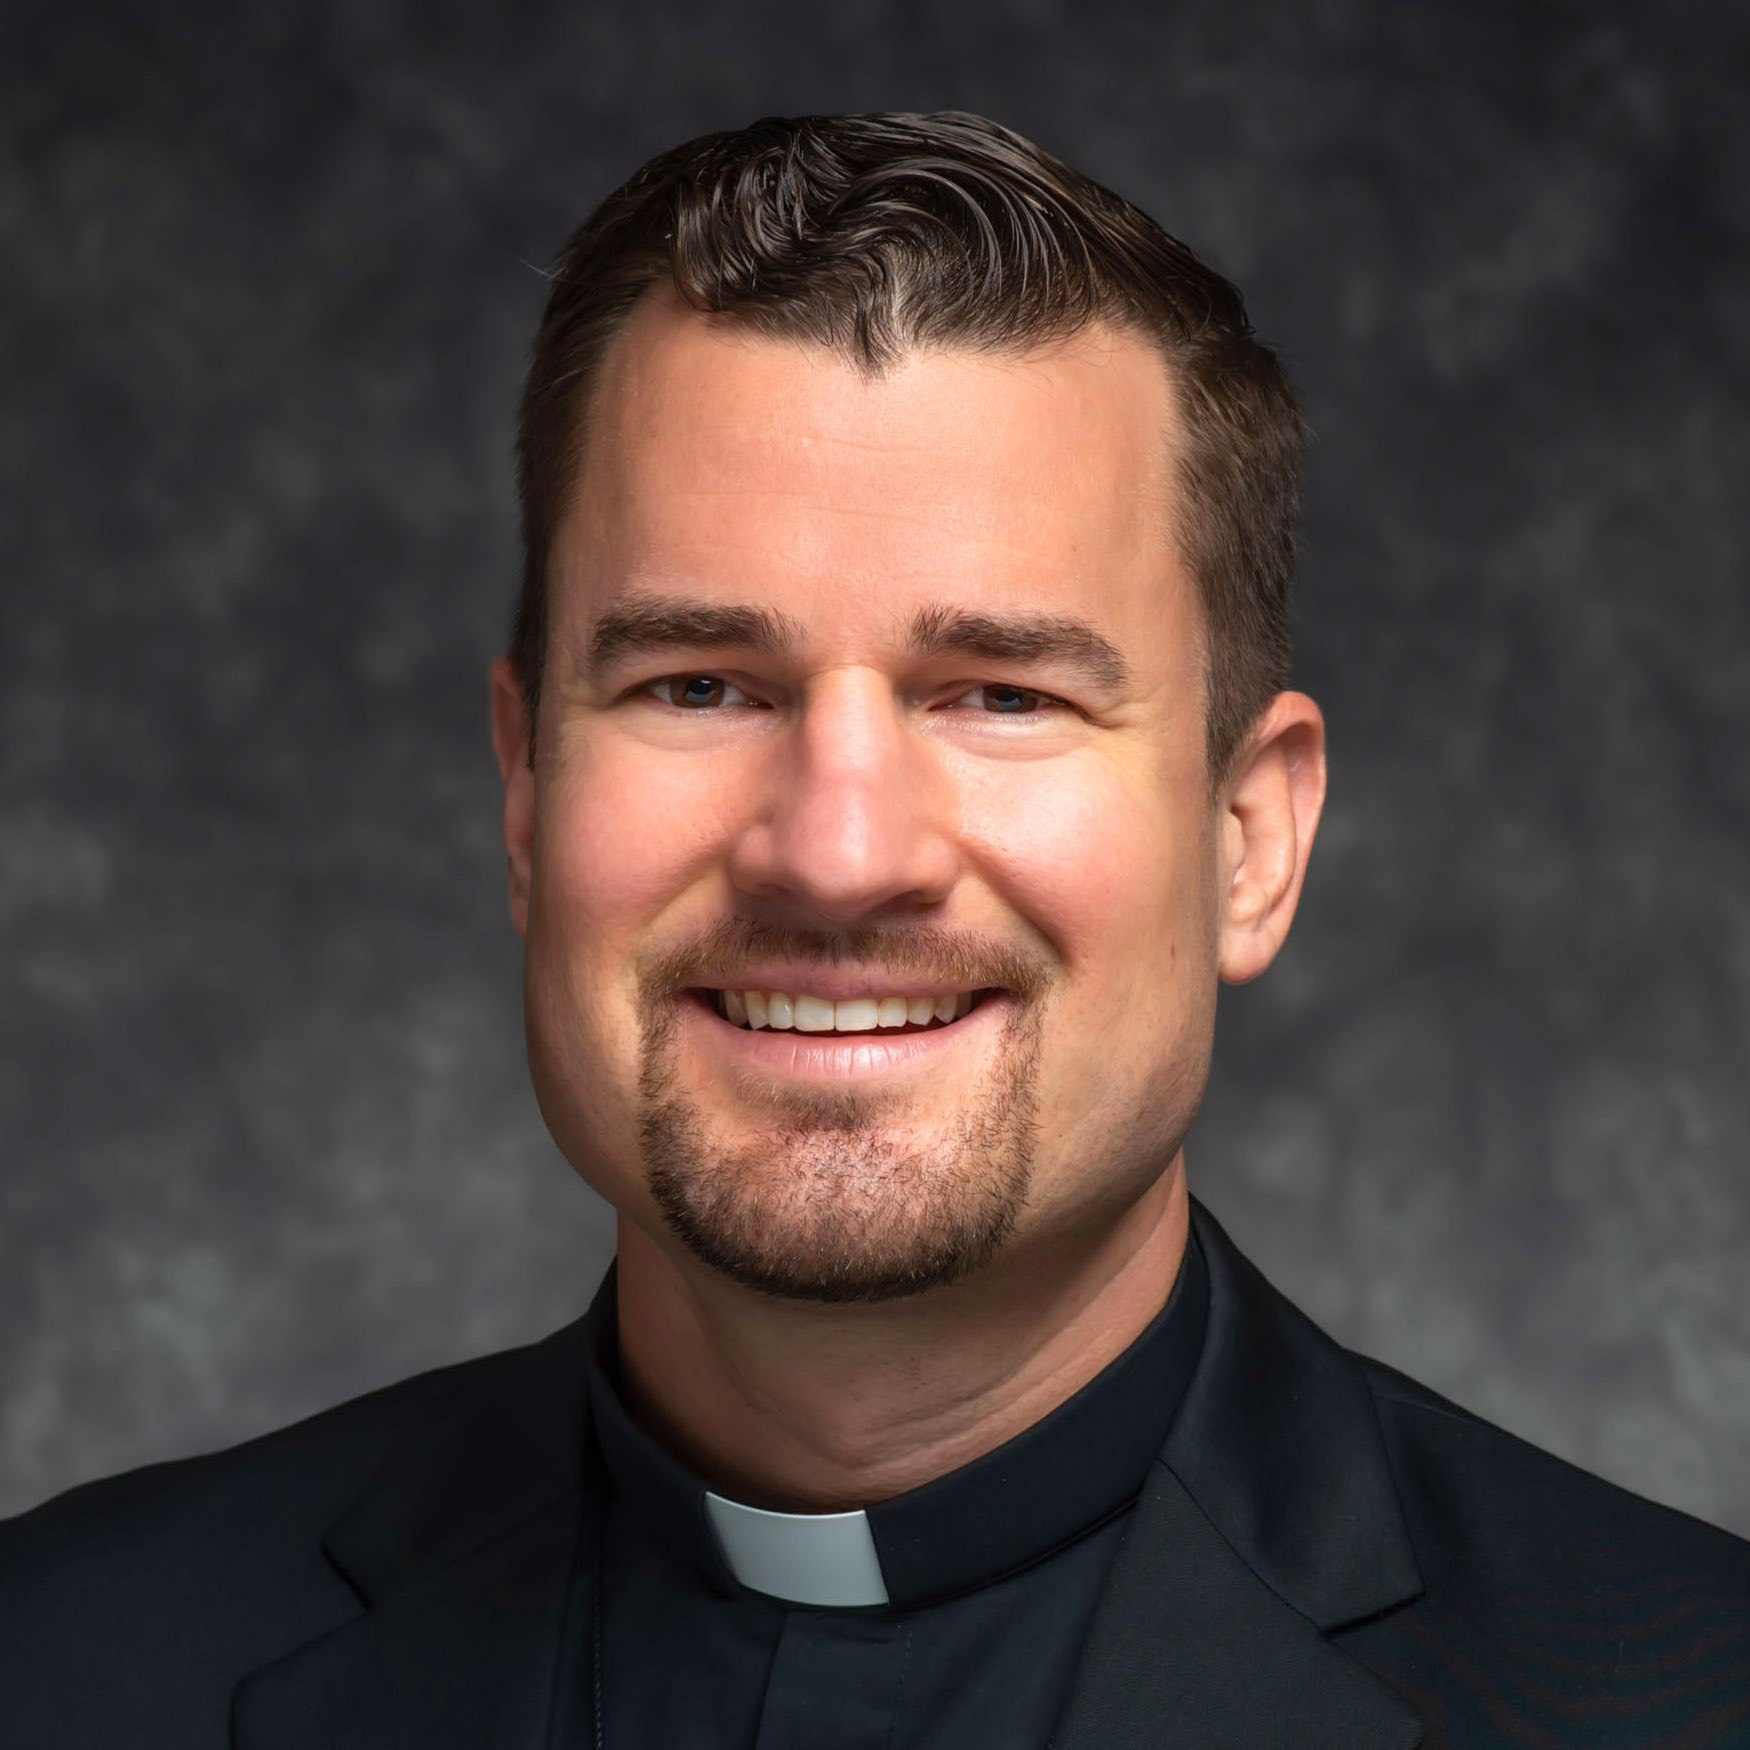 Rev. Aaron Michka, C.S.C.